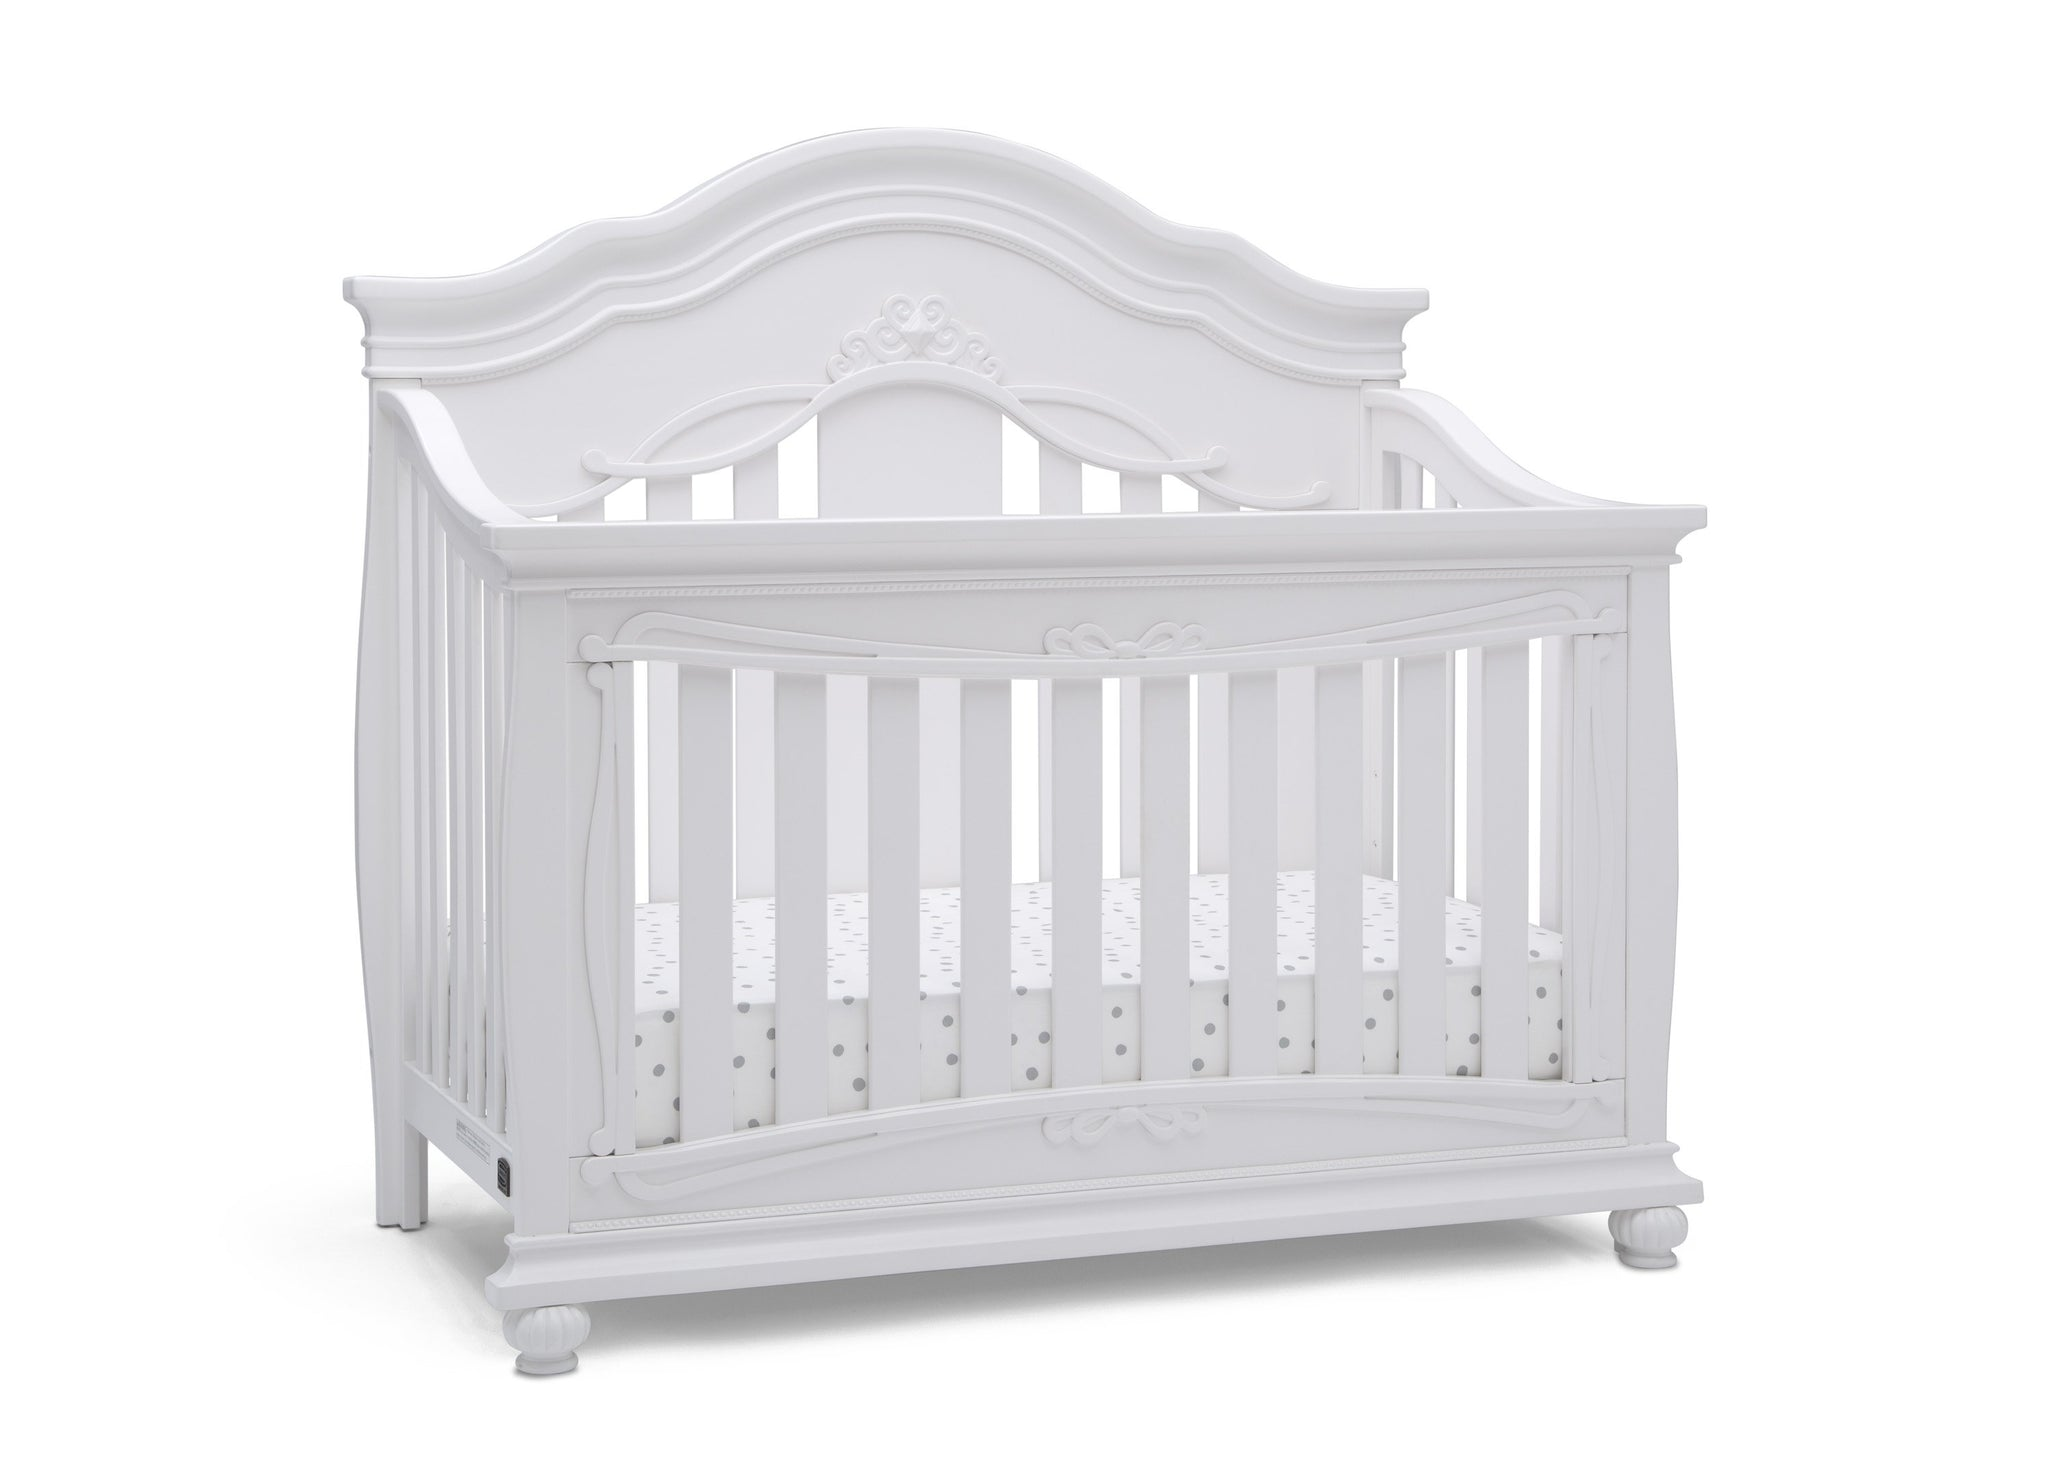 Simmons Kids Bianca White (130) Fairytale 5-in-1 Convertible Crib with Conversion Rails, Right Crib Silo View